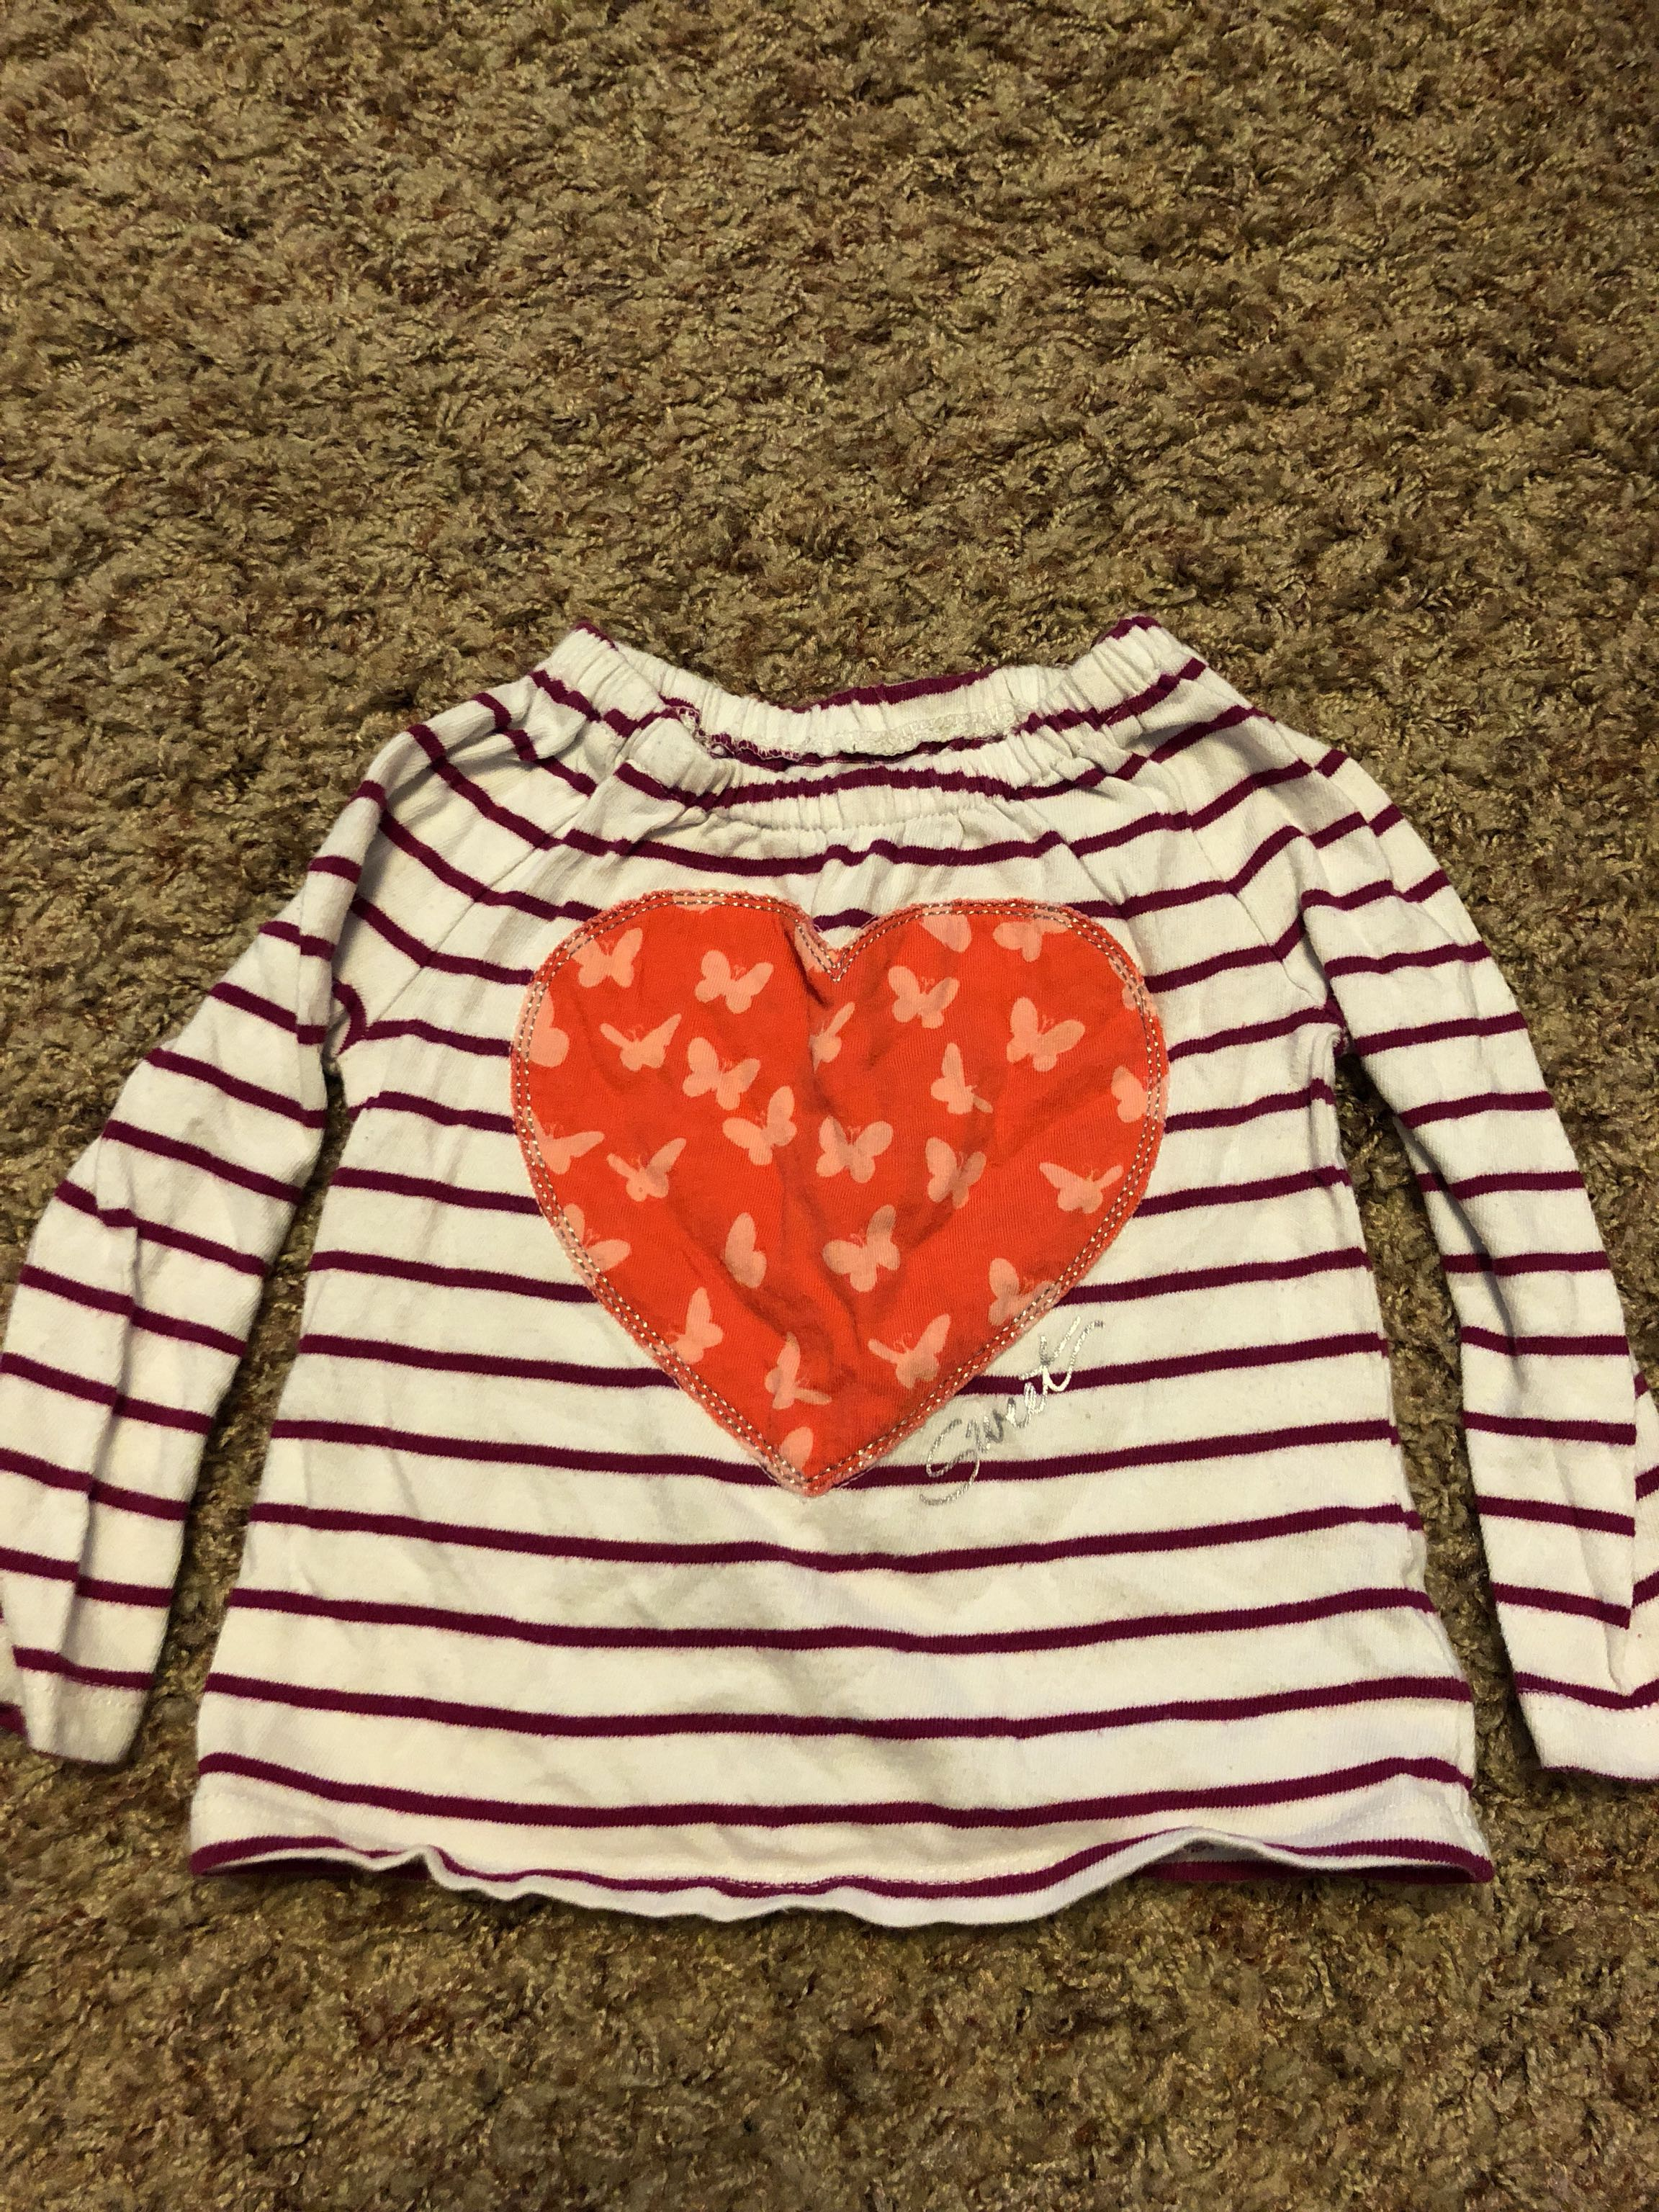 Purple & white stripped long sleeve shirt size 12-18 months